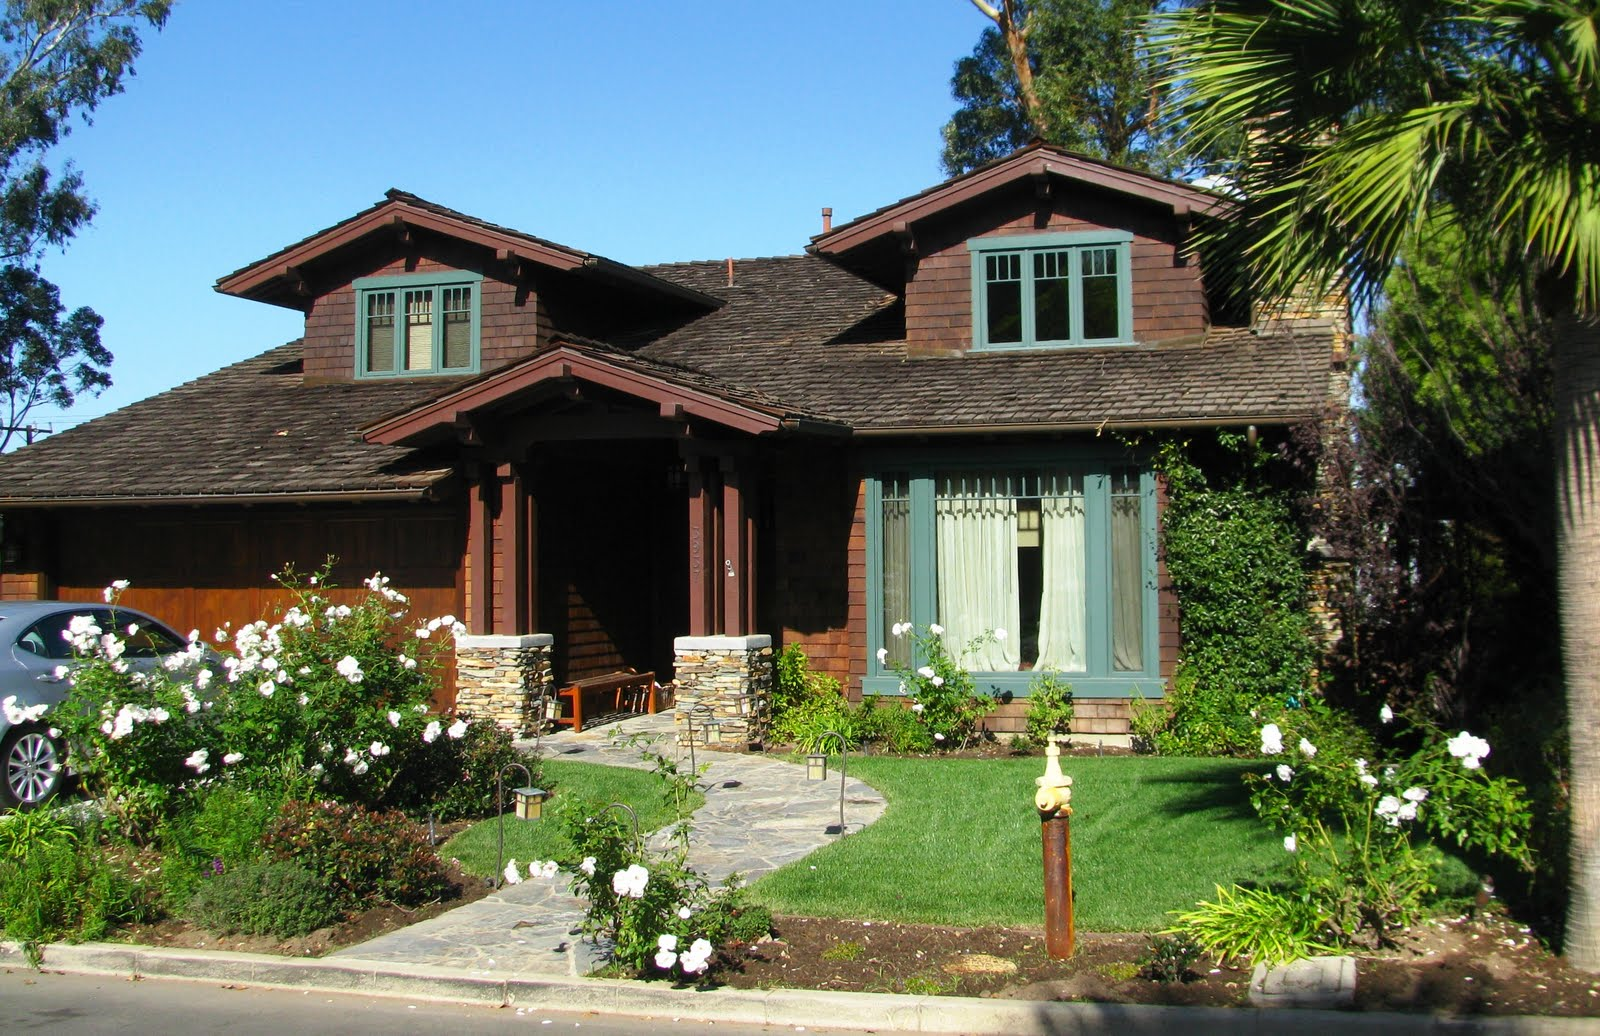 Challenged The Local Bloggers To Find The Best Craftsman Style House